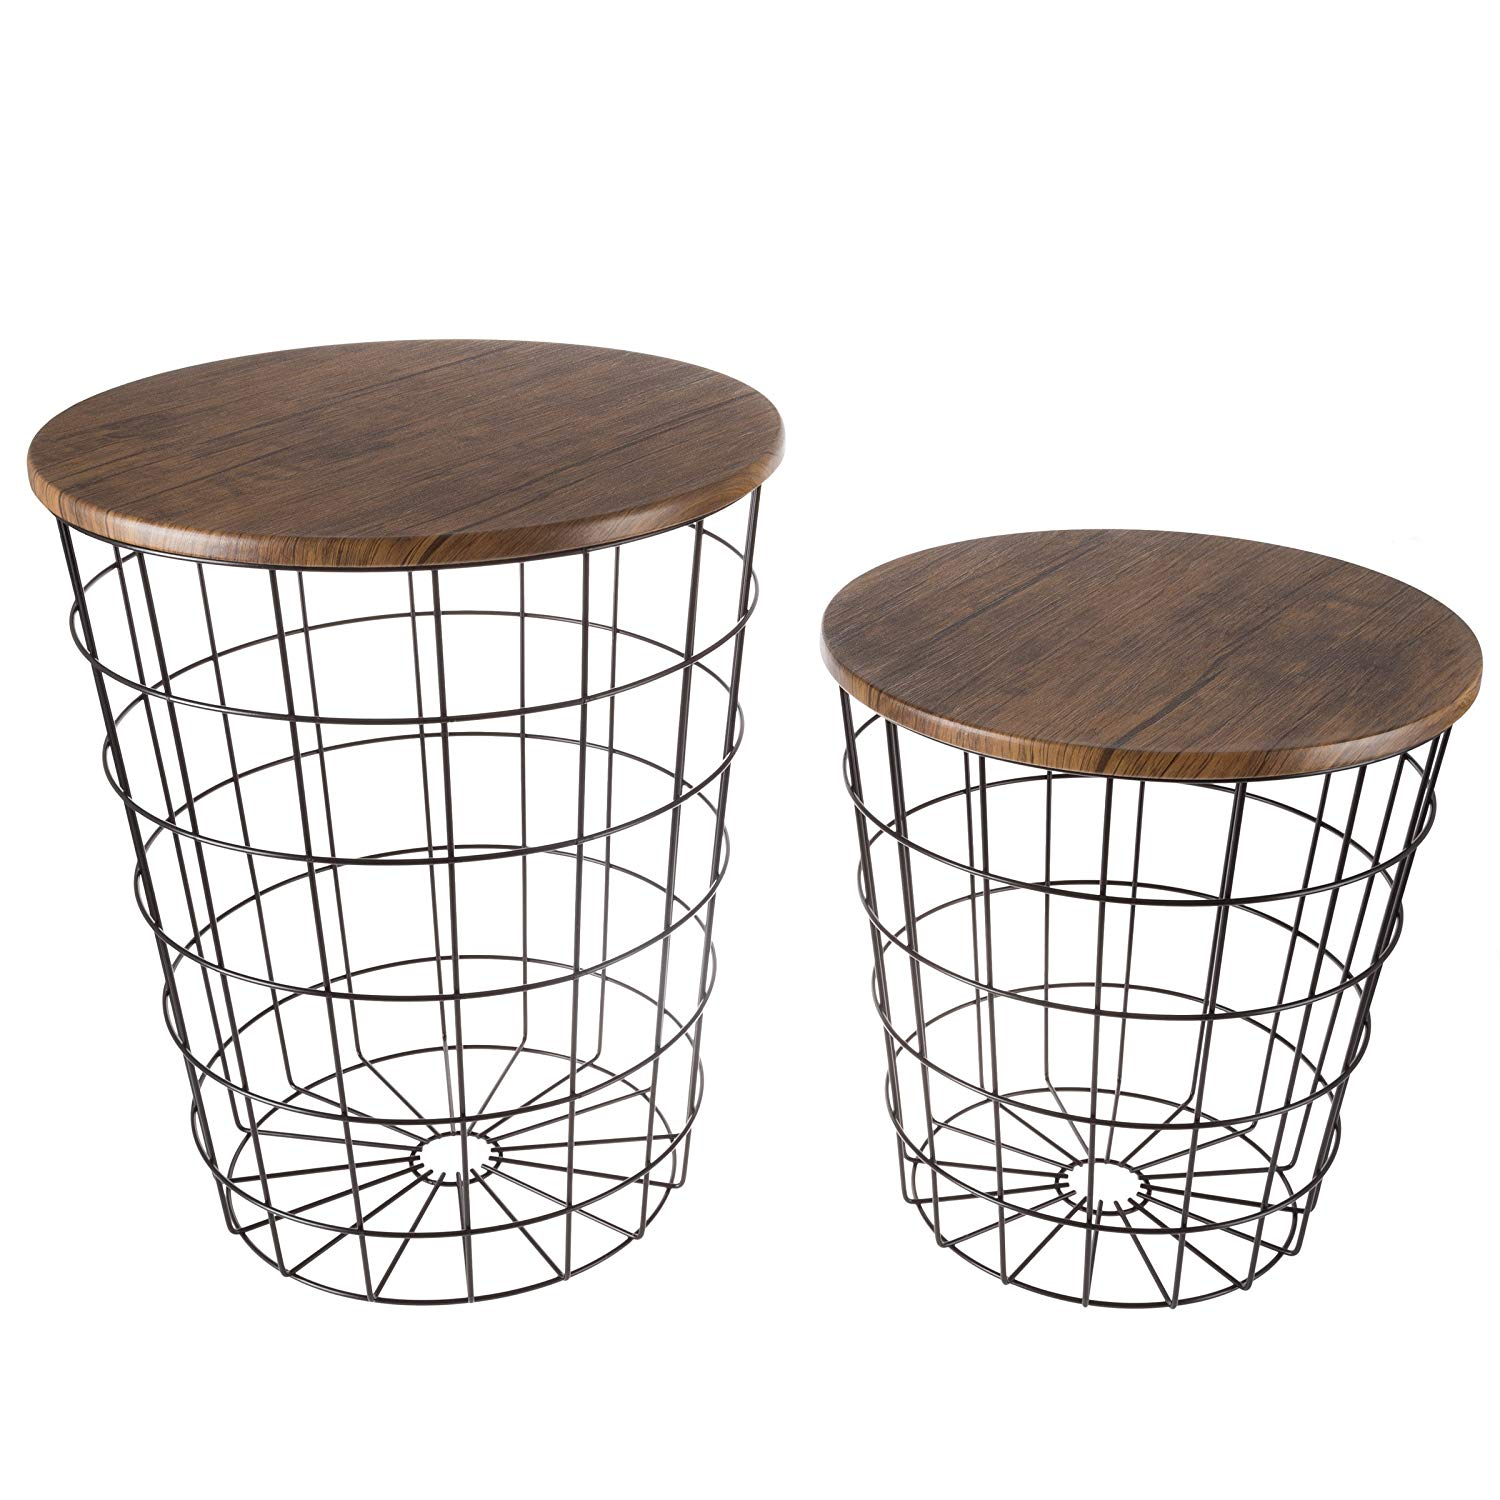 lavish home endtbl set nesting end storage accent table with baskets convertible round metal basket wood veneer top side tables black kitchen tall doors cream lamp oak dining